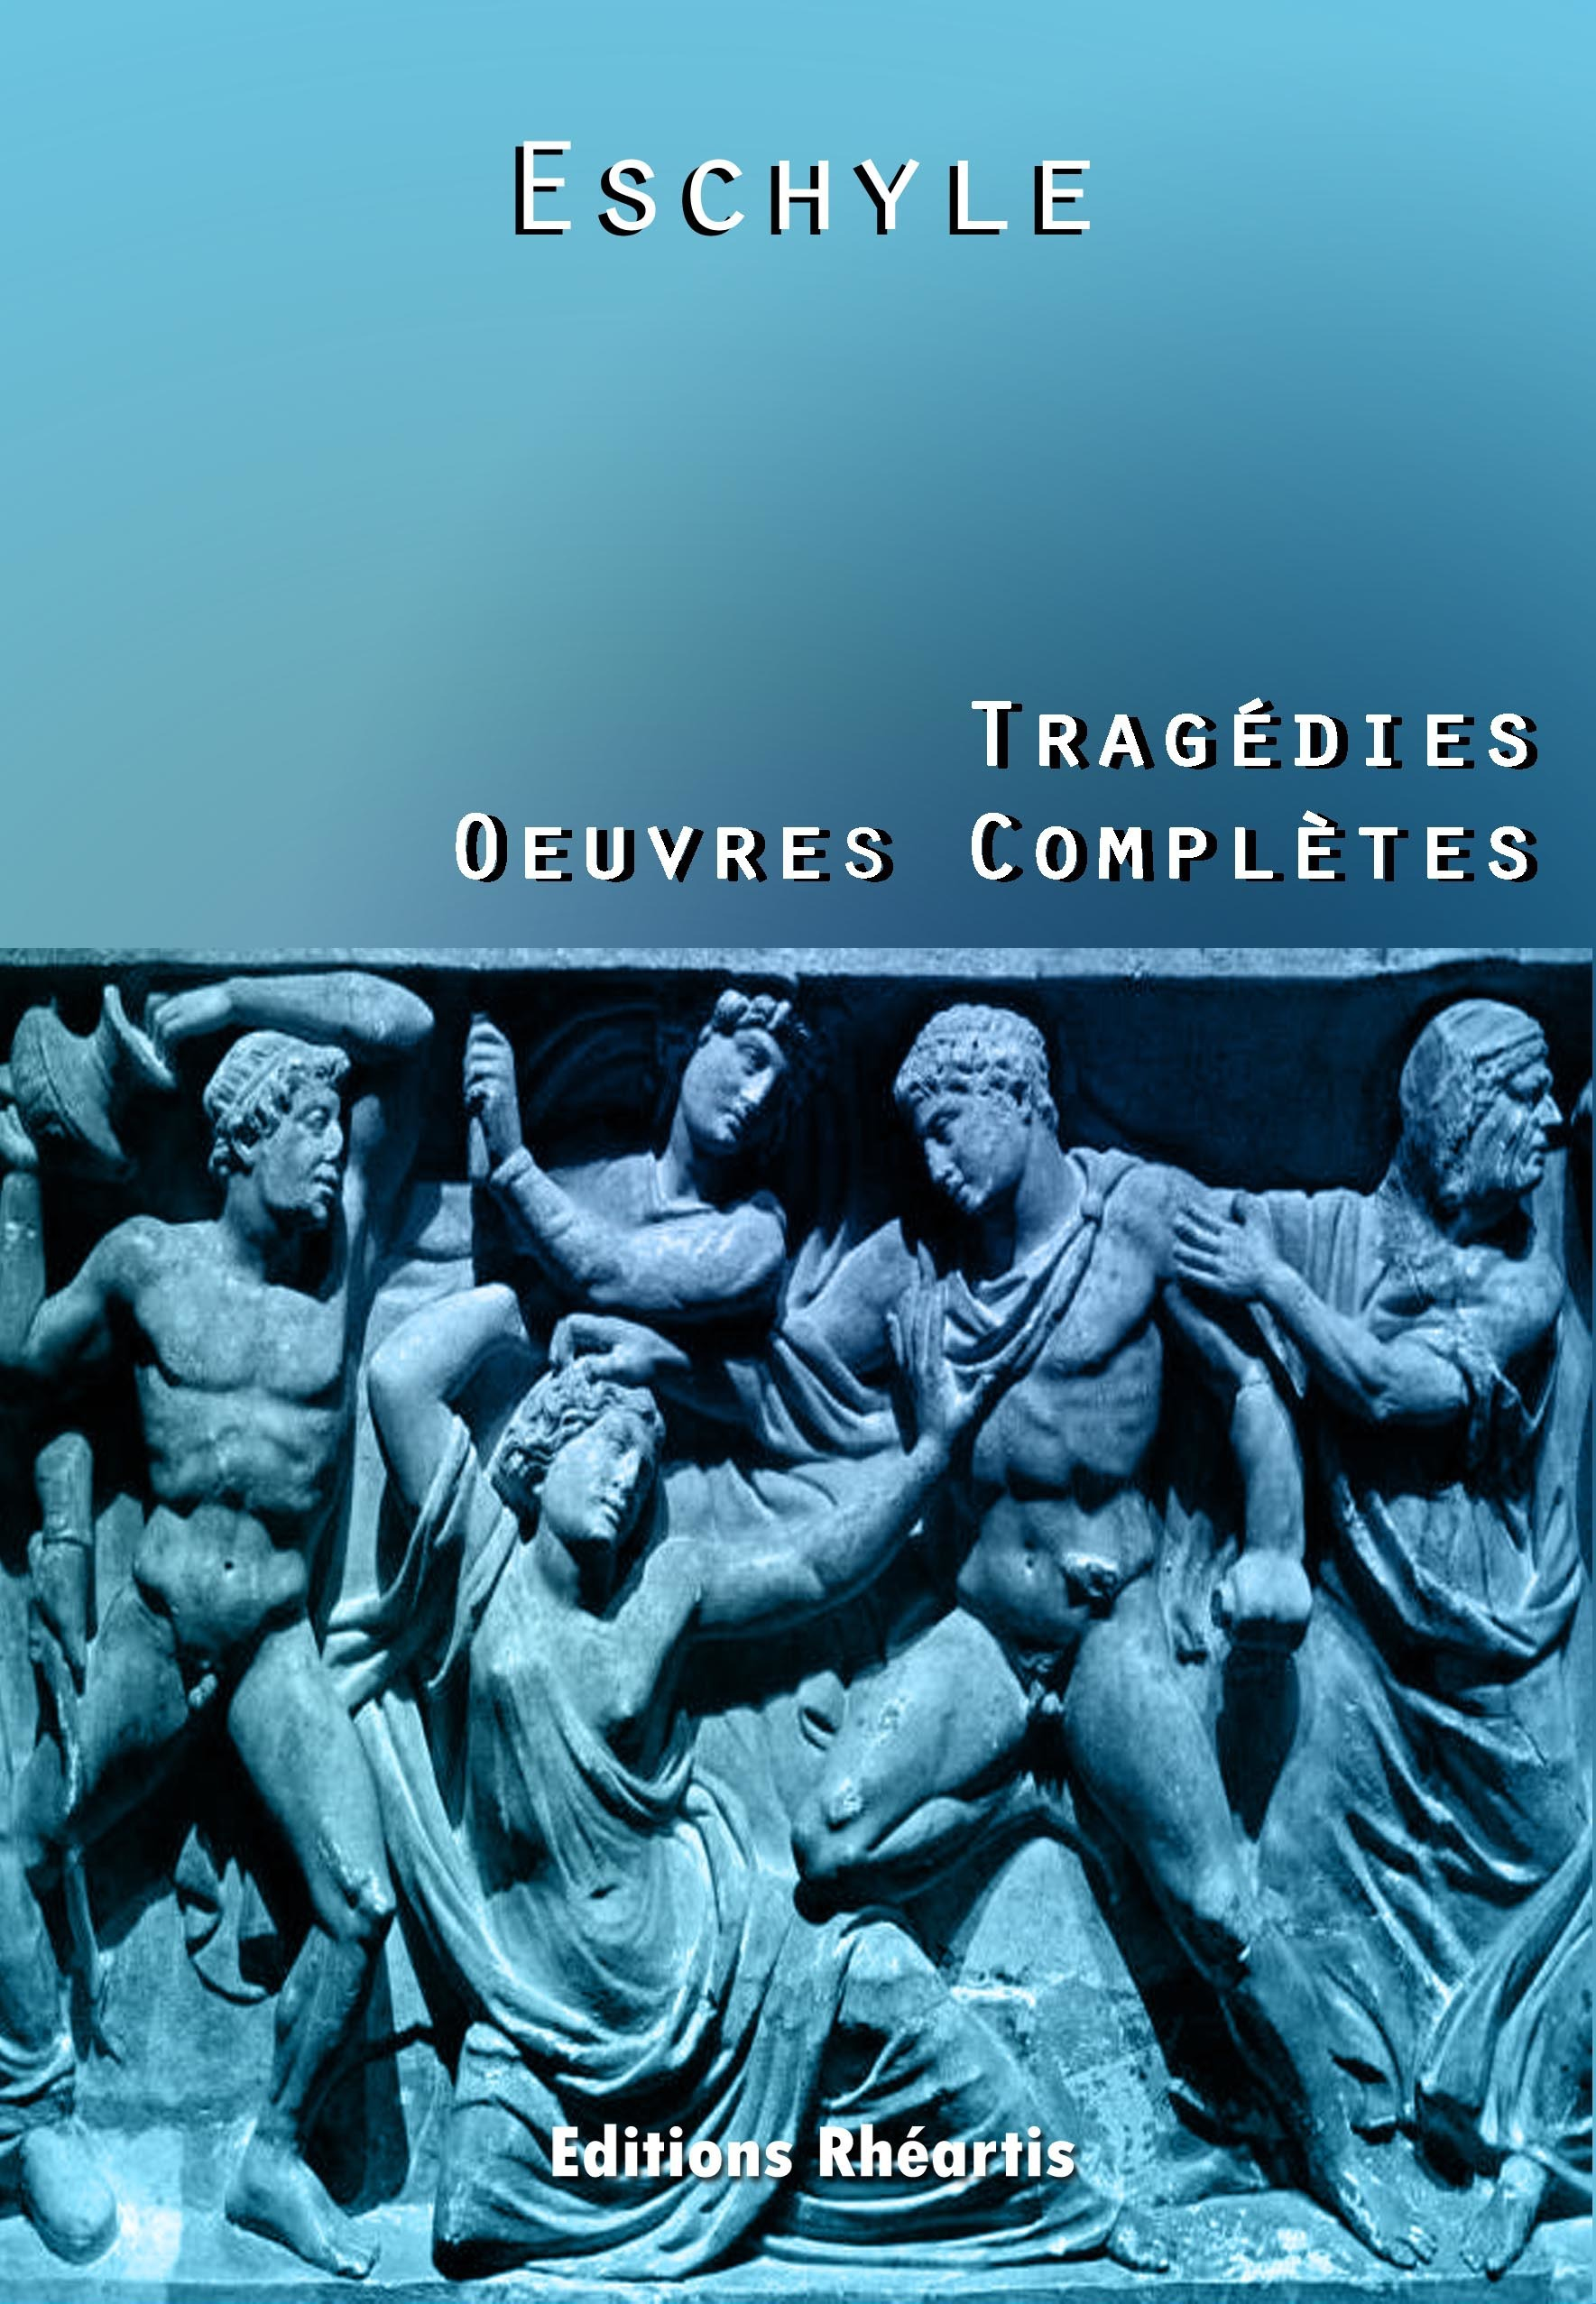 Tragedies oeuvres completes